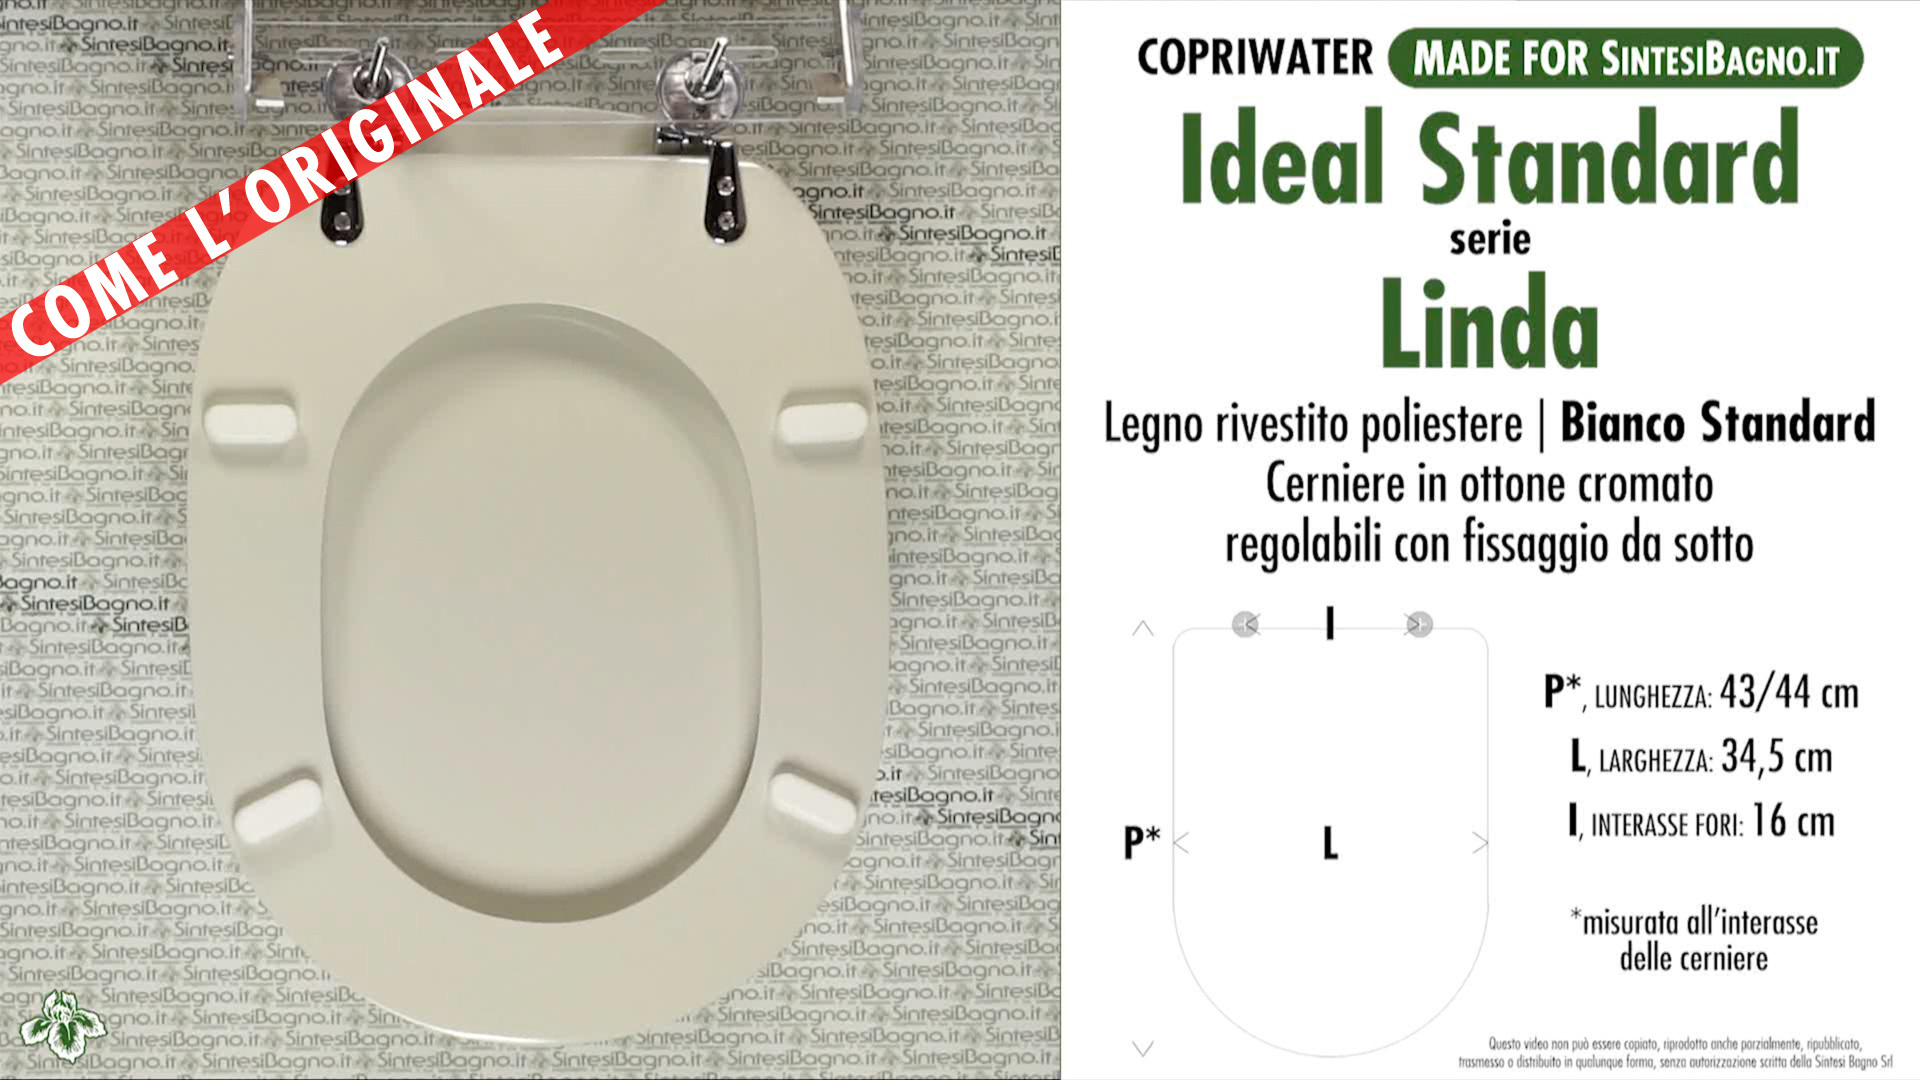 Sedile Copriwater Ideal Standard.Wc Seat Made For Wc Linda Ideal Standard Model Standard White Type Dedicated Sintesibagno Shop Online